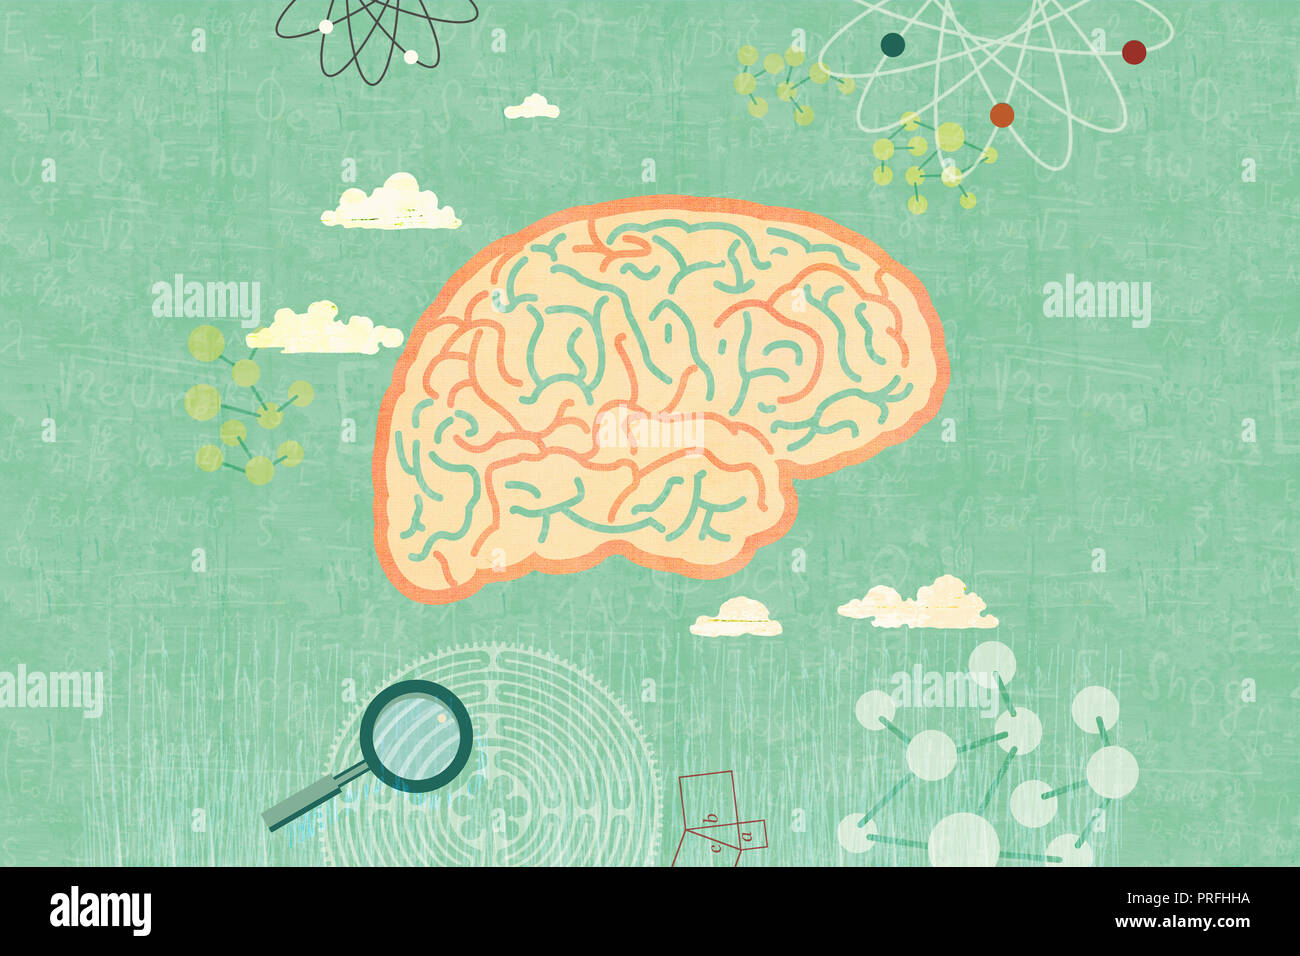 brains surrounded by scientific symbols - Stock Image